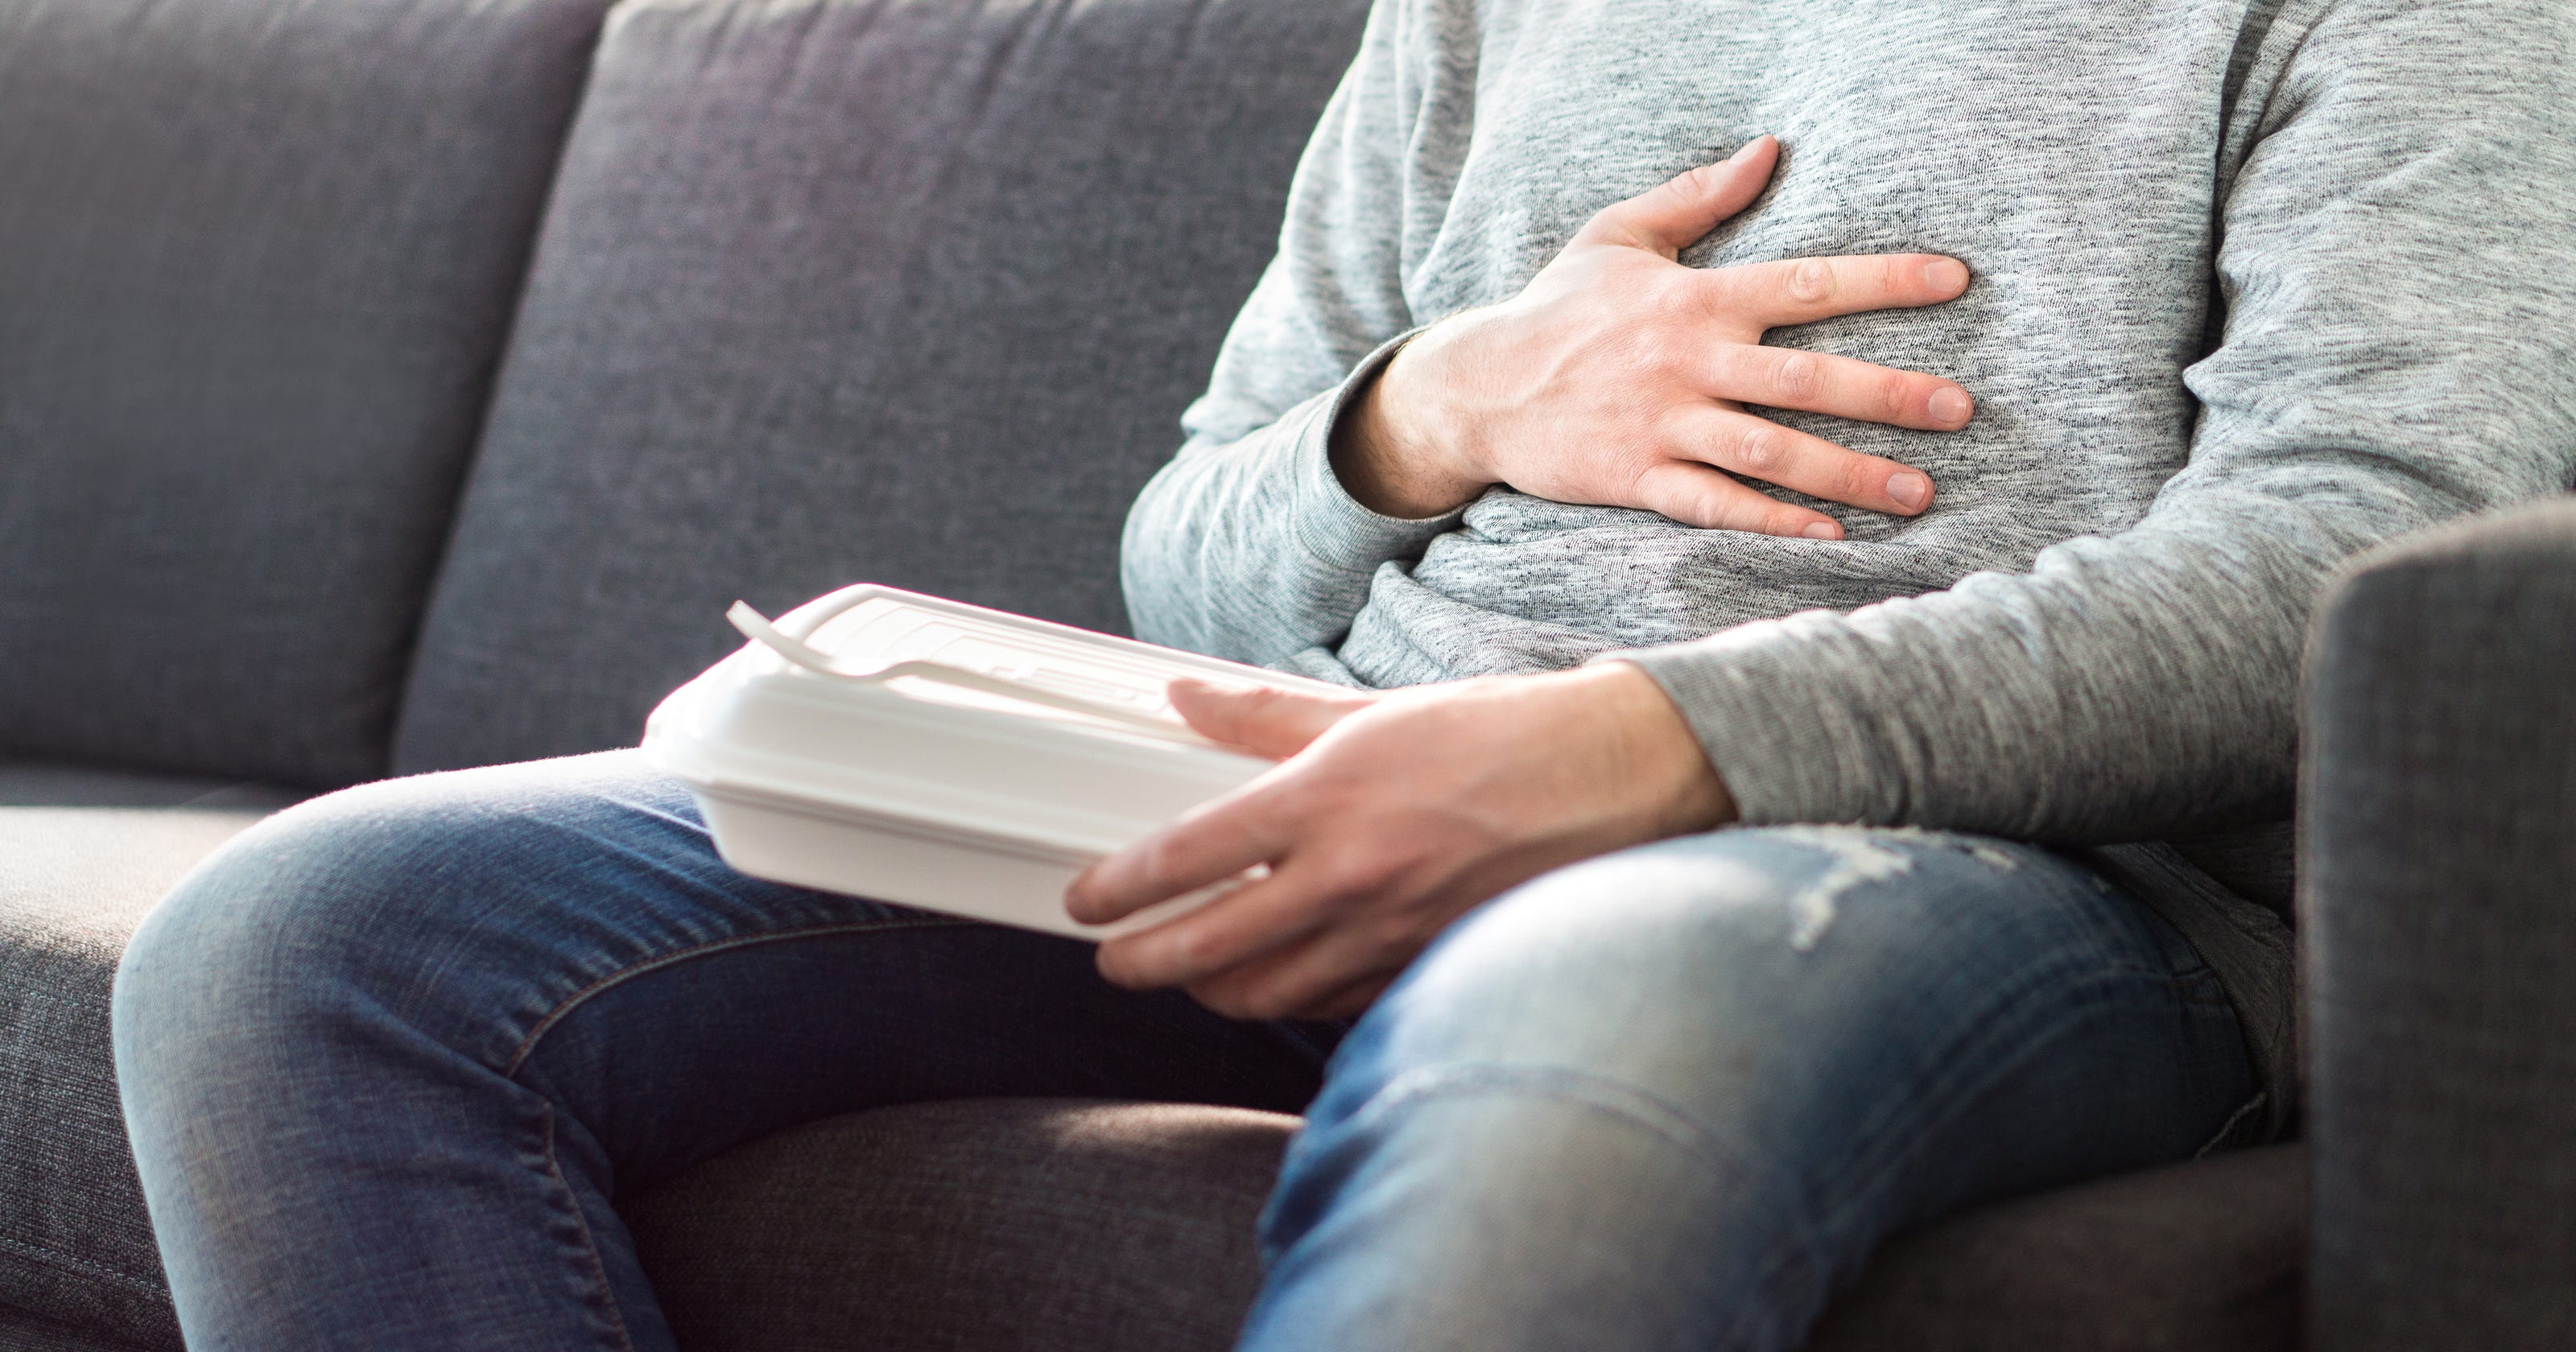 Gastritis, or inflammation of the stomach lining, may be to